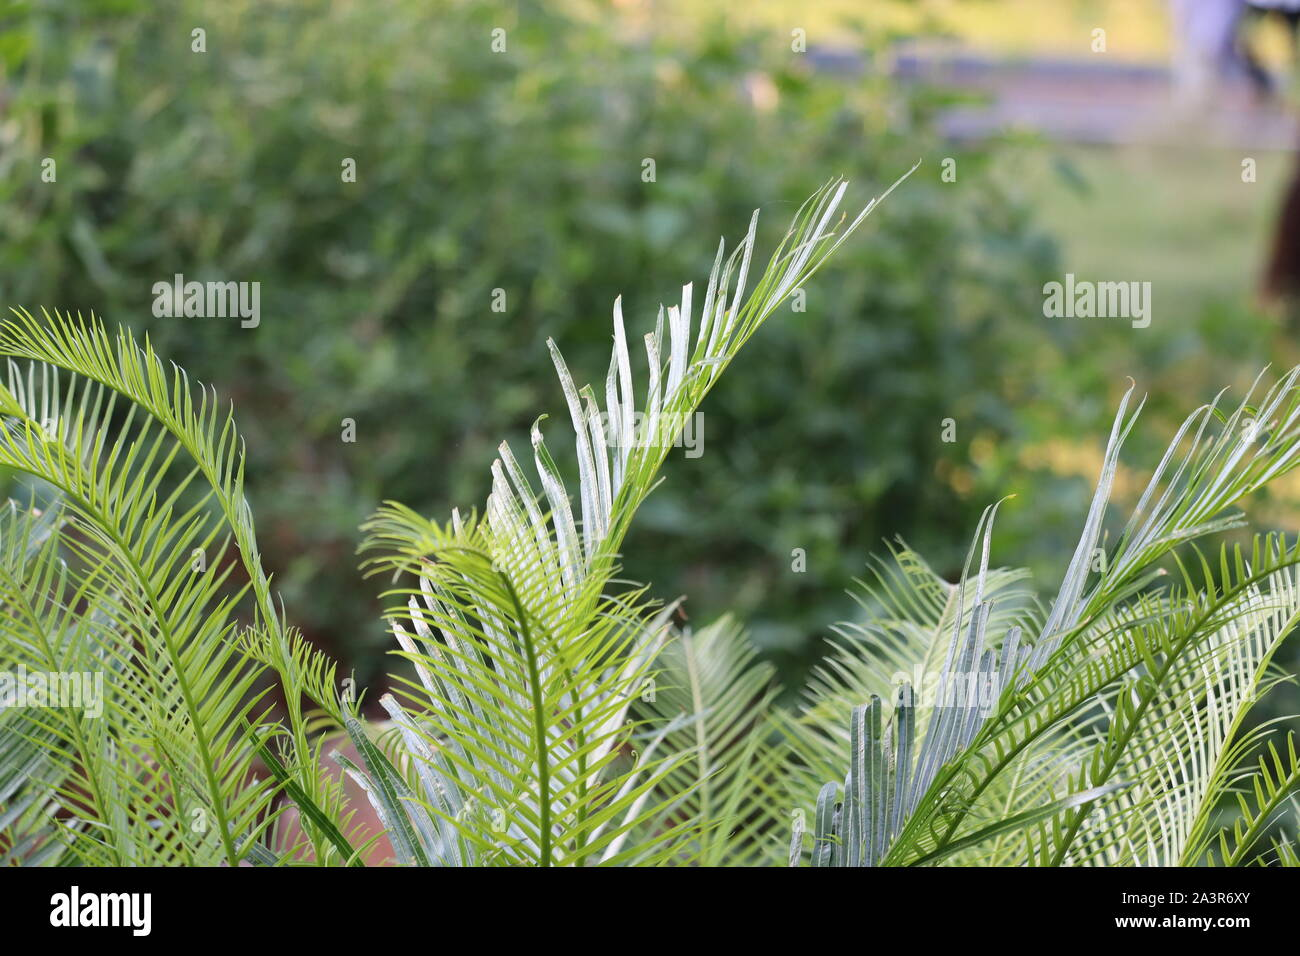 Green Leaf Backgrounds Leaves Of Fern In Natural Ornament From Green Plants Green Background Fern Shrub Stock Photo Alamy